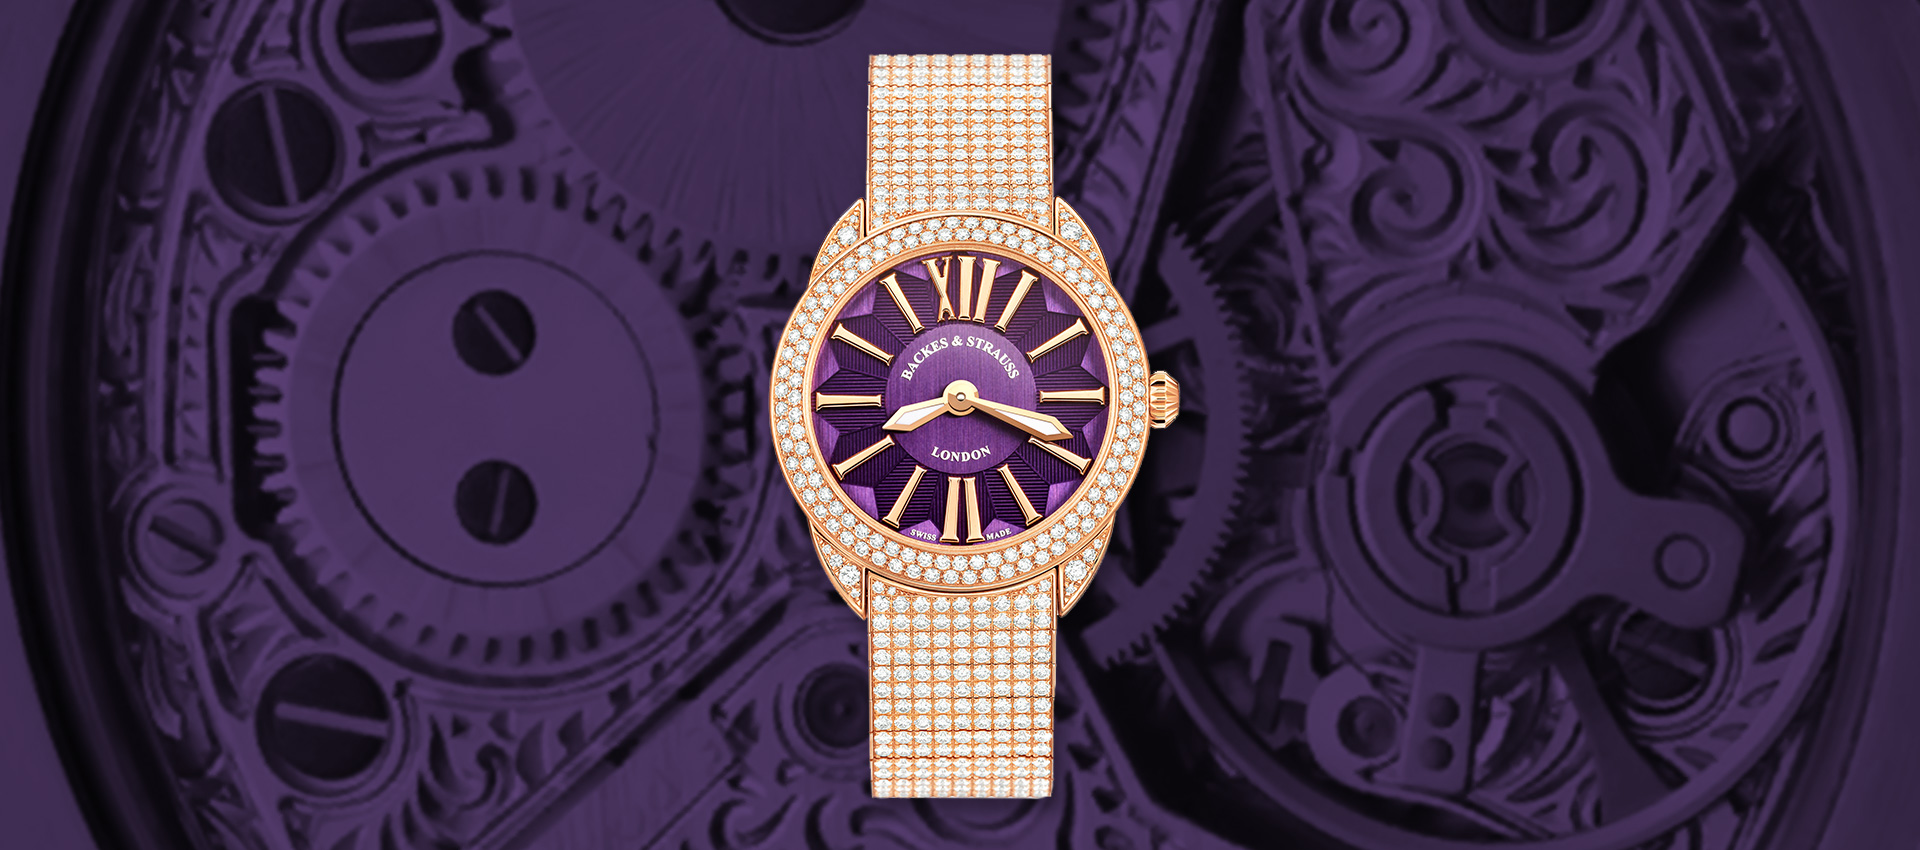 Piccadilly Renaissance Ballerina diamond wristwatch for ladies